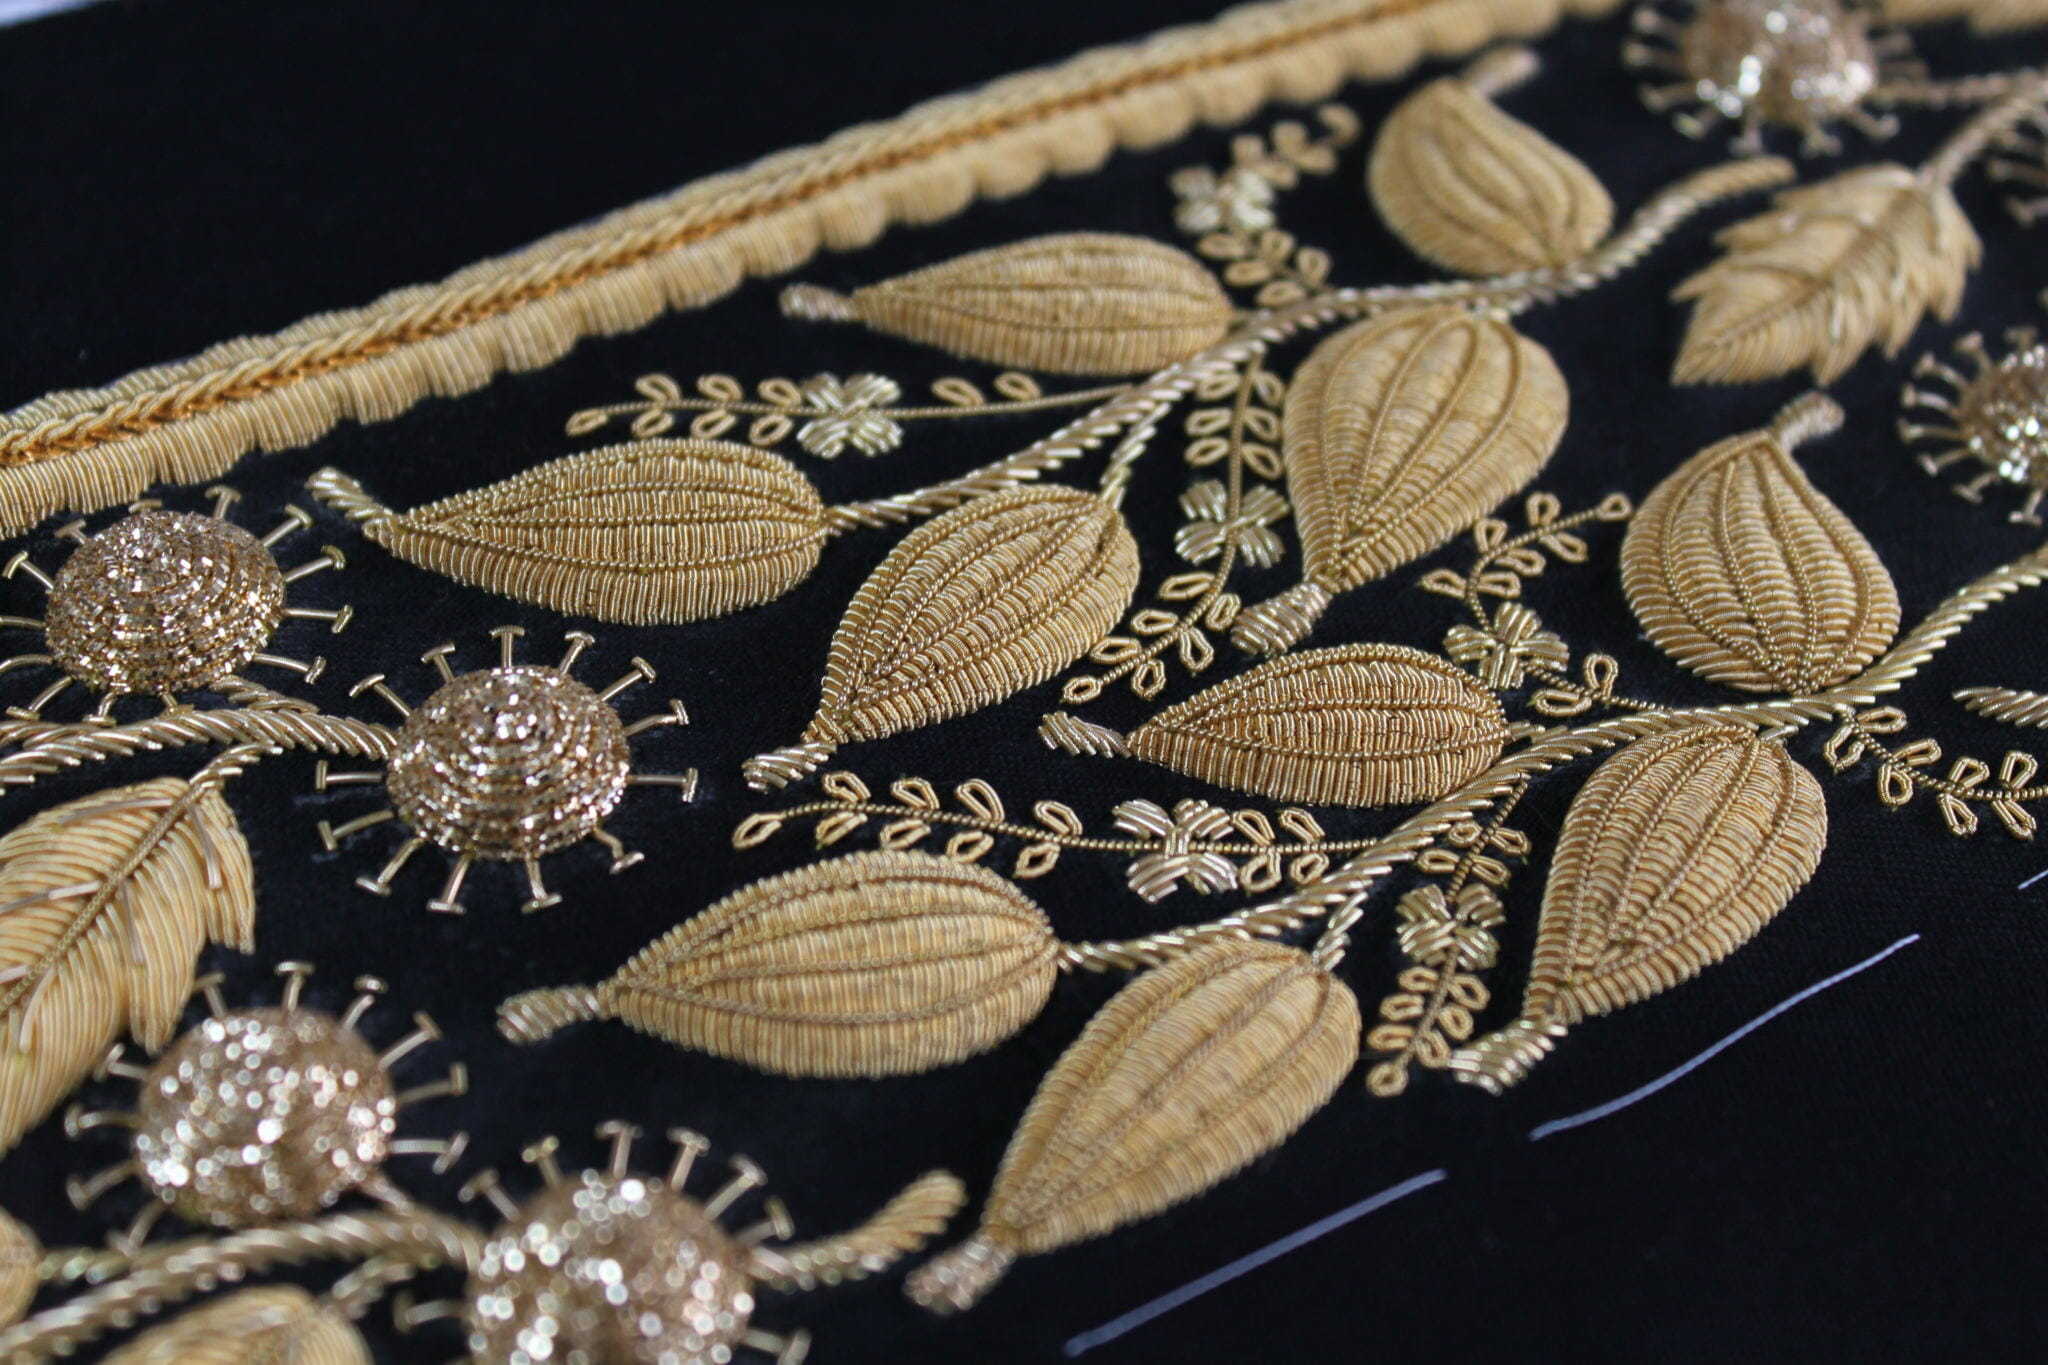 Hawthorne and Heaney Goldwork